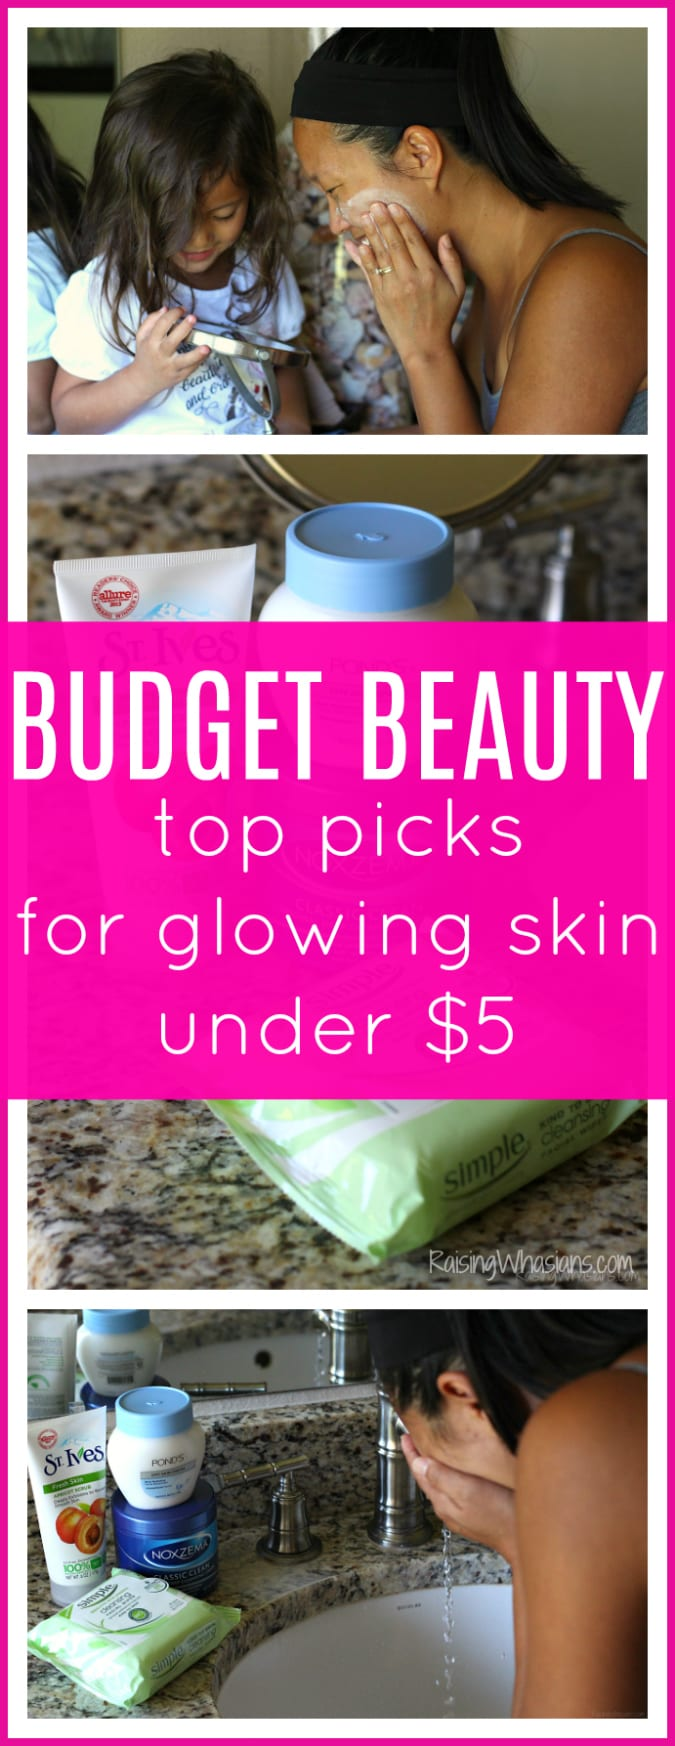 Beauty for moms under 5